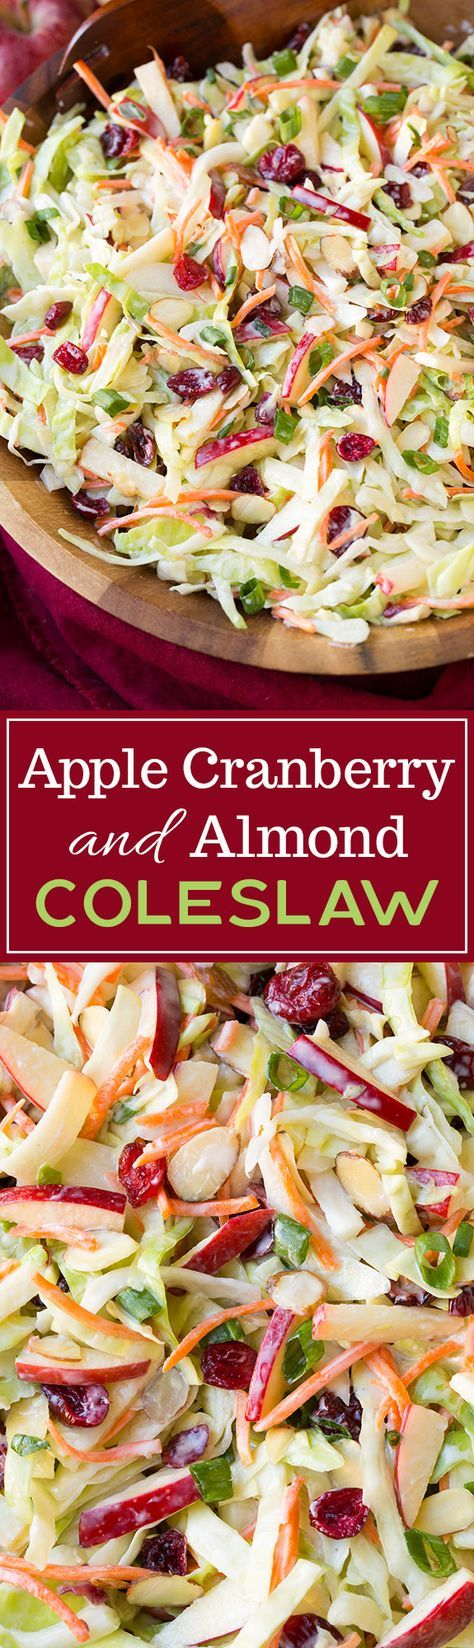 Apple Cranberry Almond Coleslaw - love that it uses mostly Greek yogurt instead of mayo! Easy, healthy, delicious! (Paleo Soup Honey)